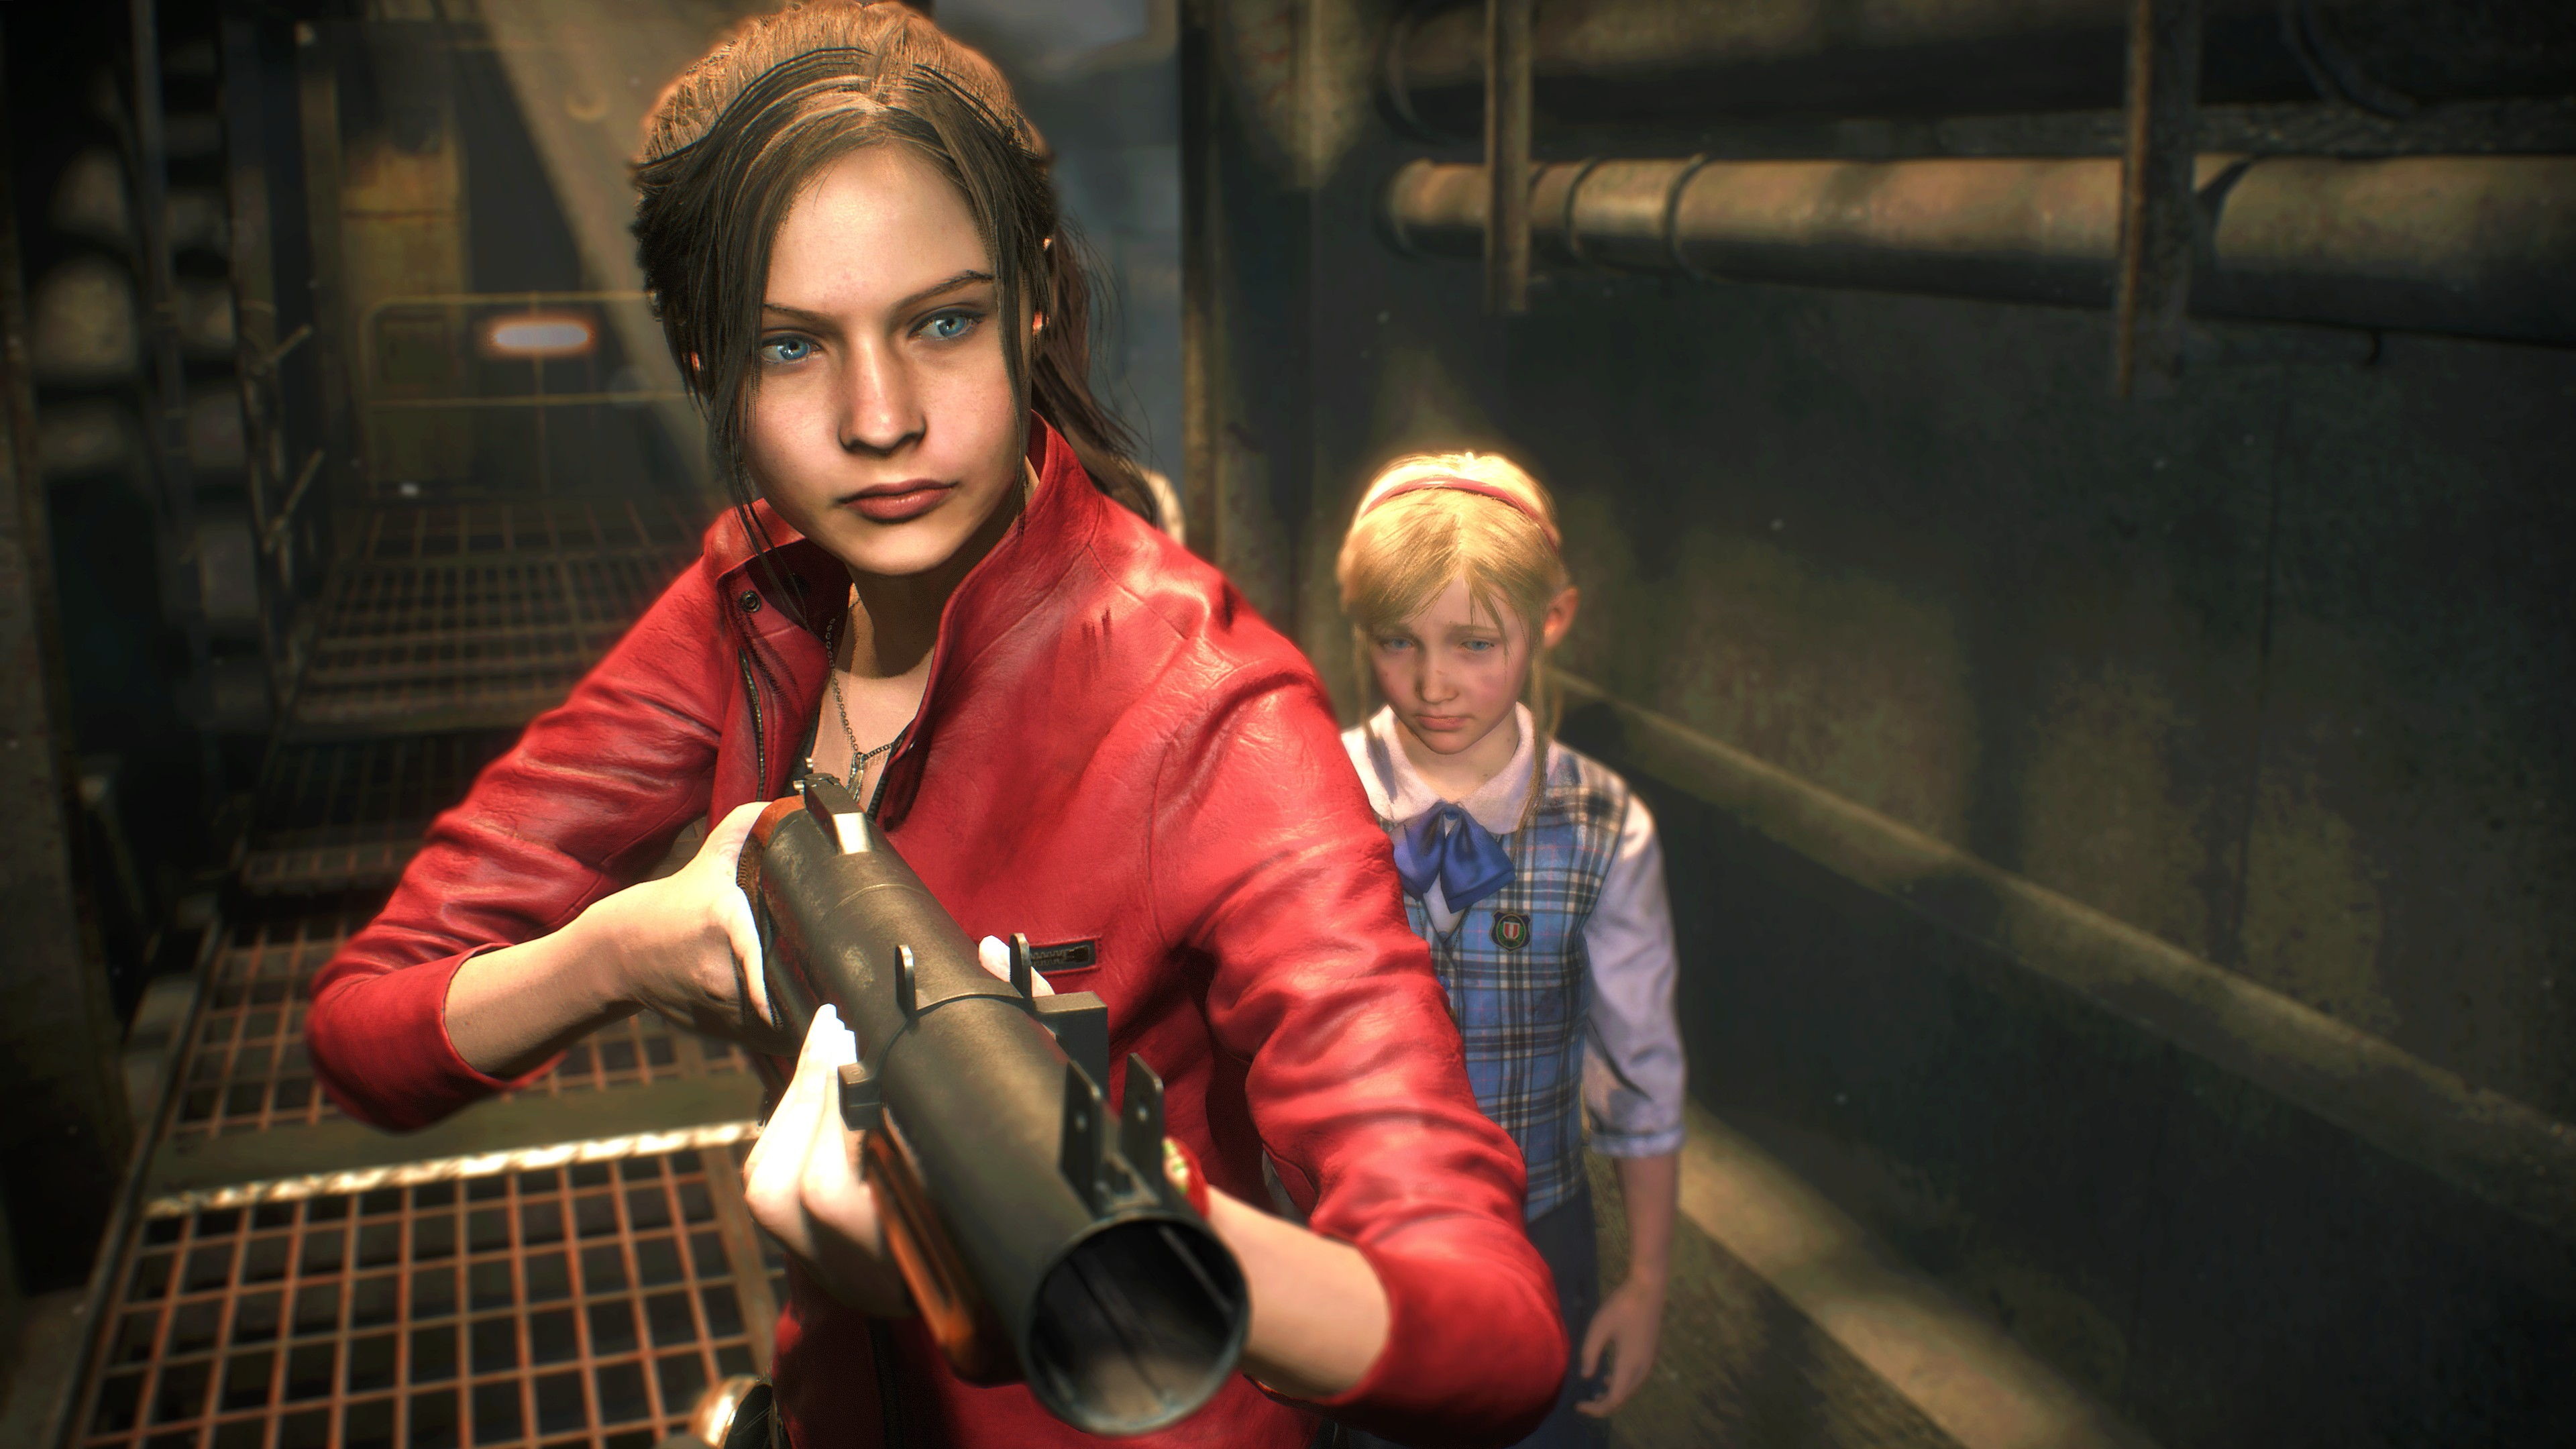 Capcom's Resident Evil games are about human tragedy, not zombies